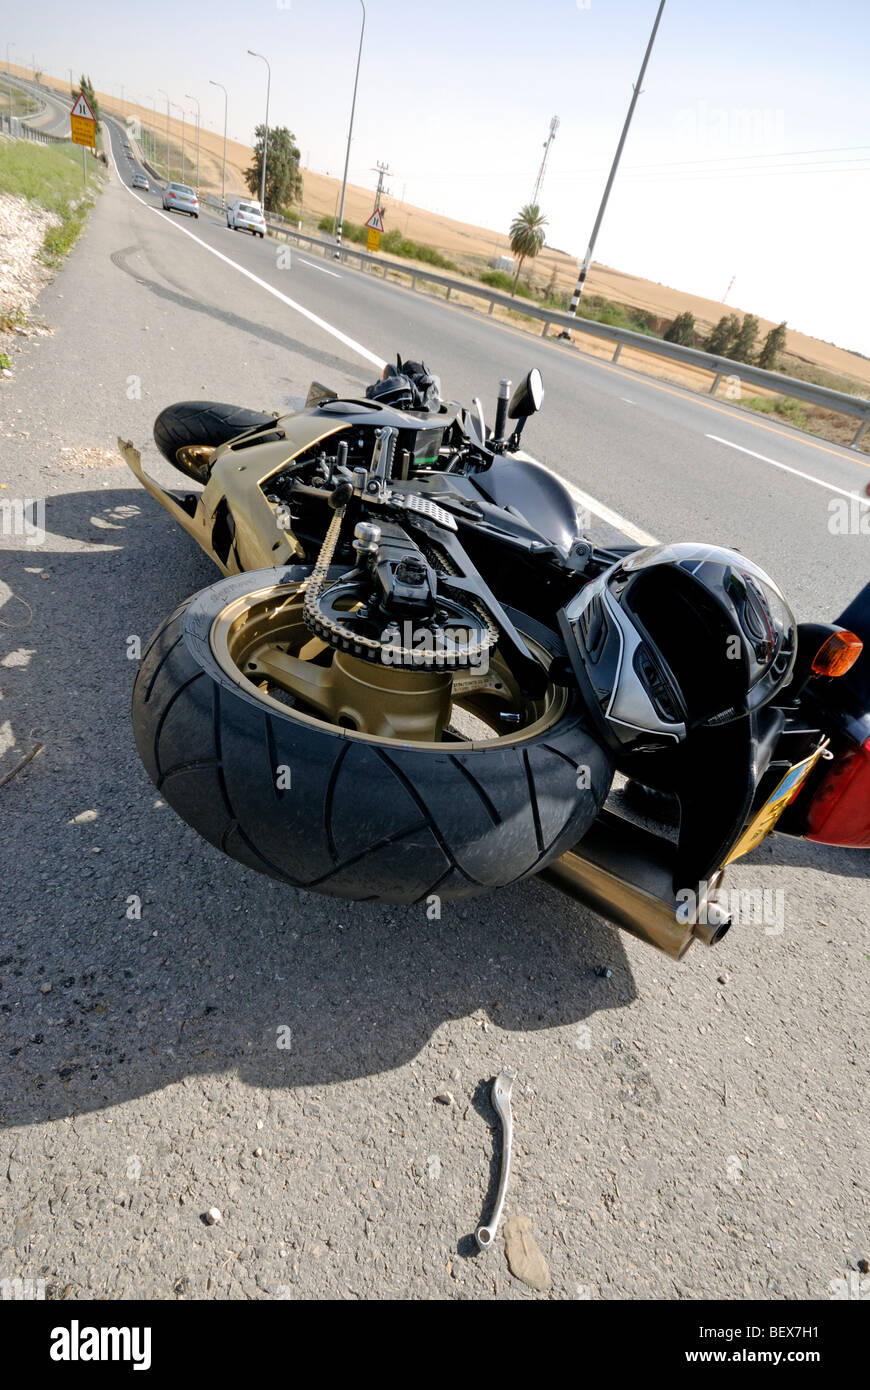 Israel, A motorbike lies on the road after a traffic collision - Stock Image